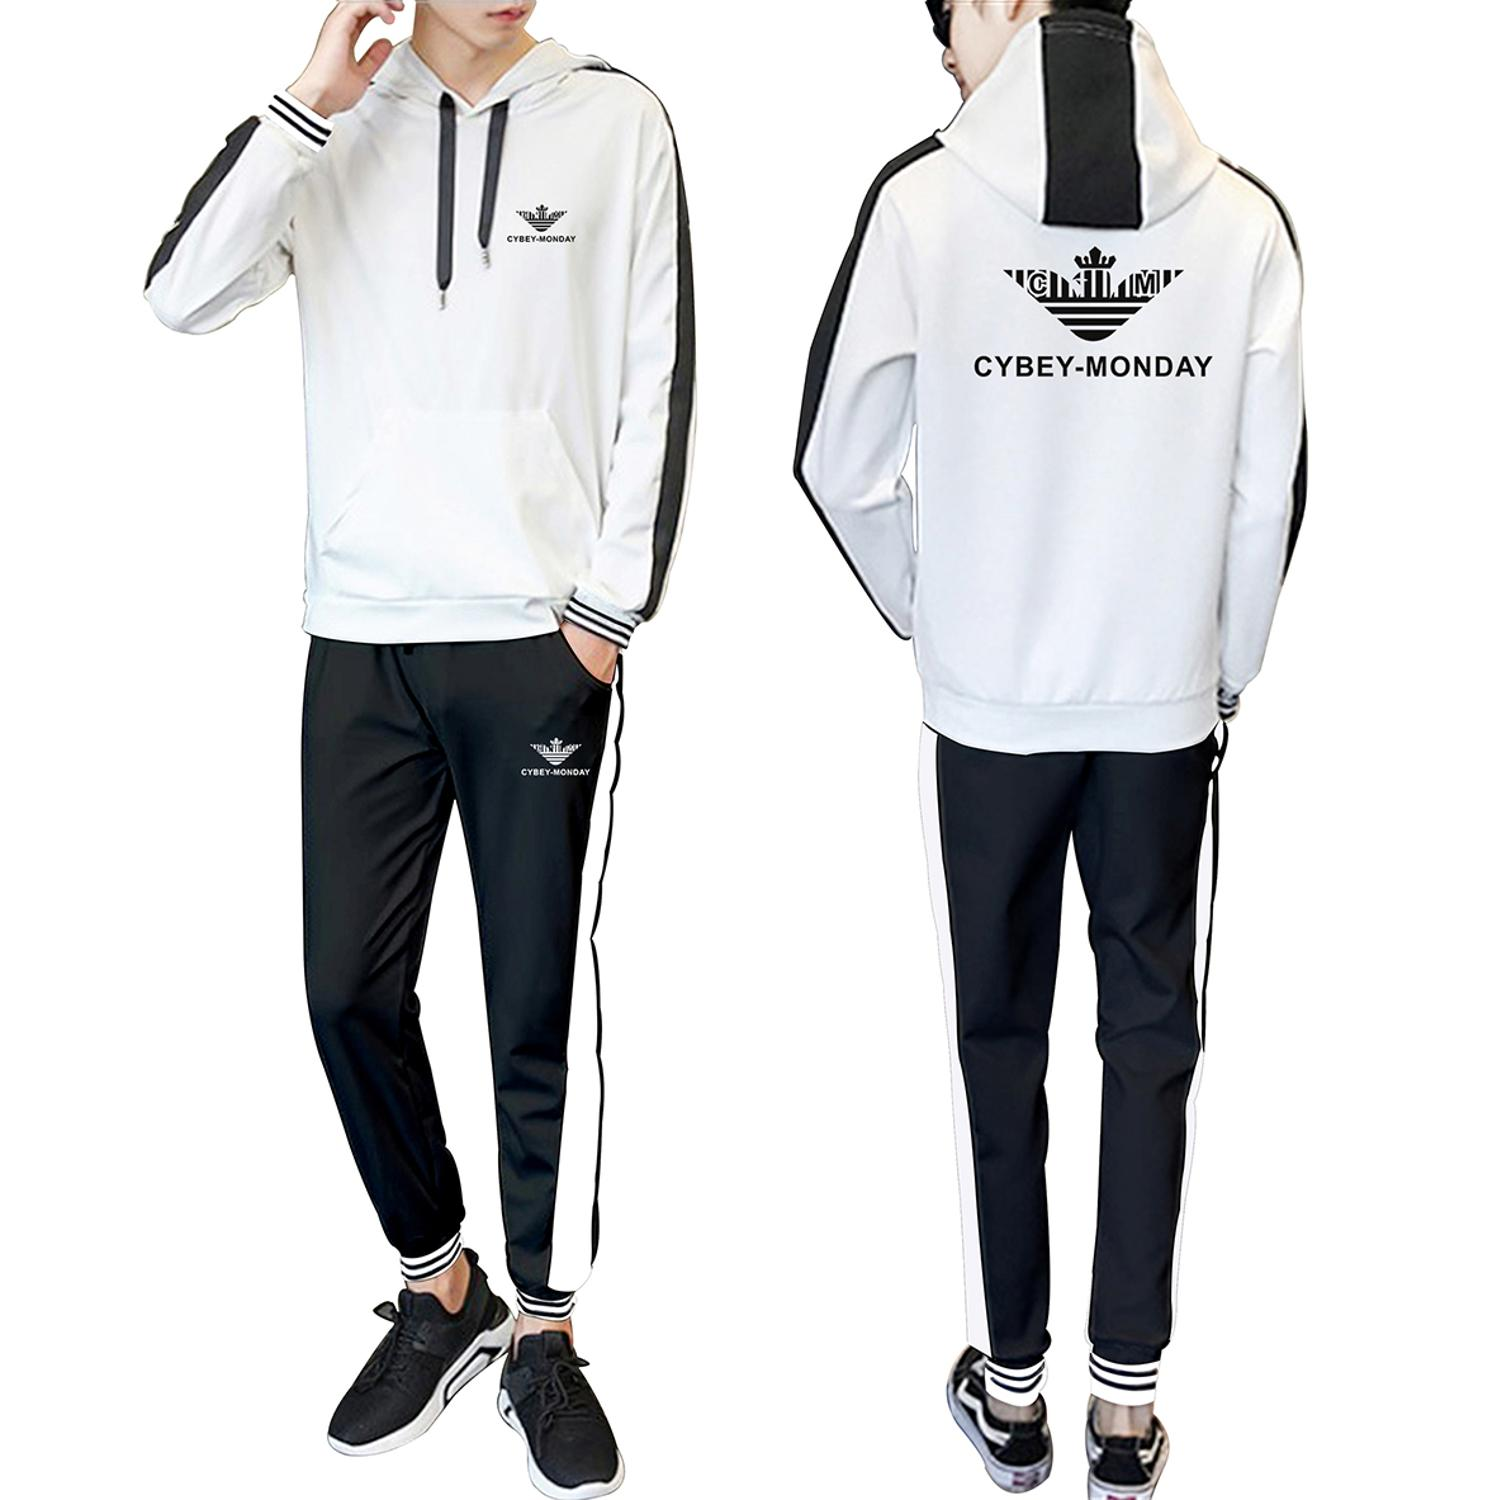 Sports New Logo 2020 Spring and Autumn New Hooded Stitching Fashion Casual Suit Fashion Men's and Women's Sports Casual Suit 2